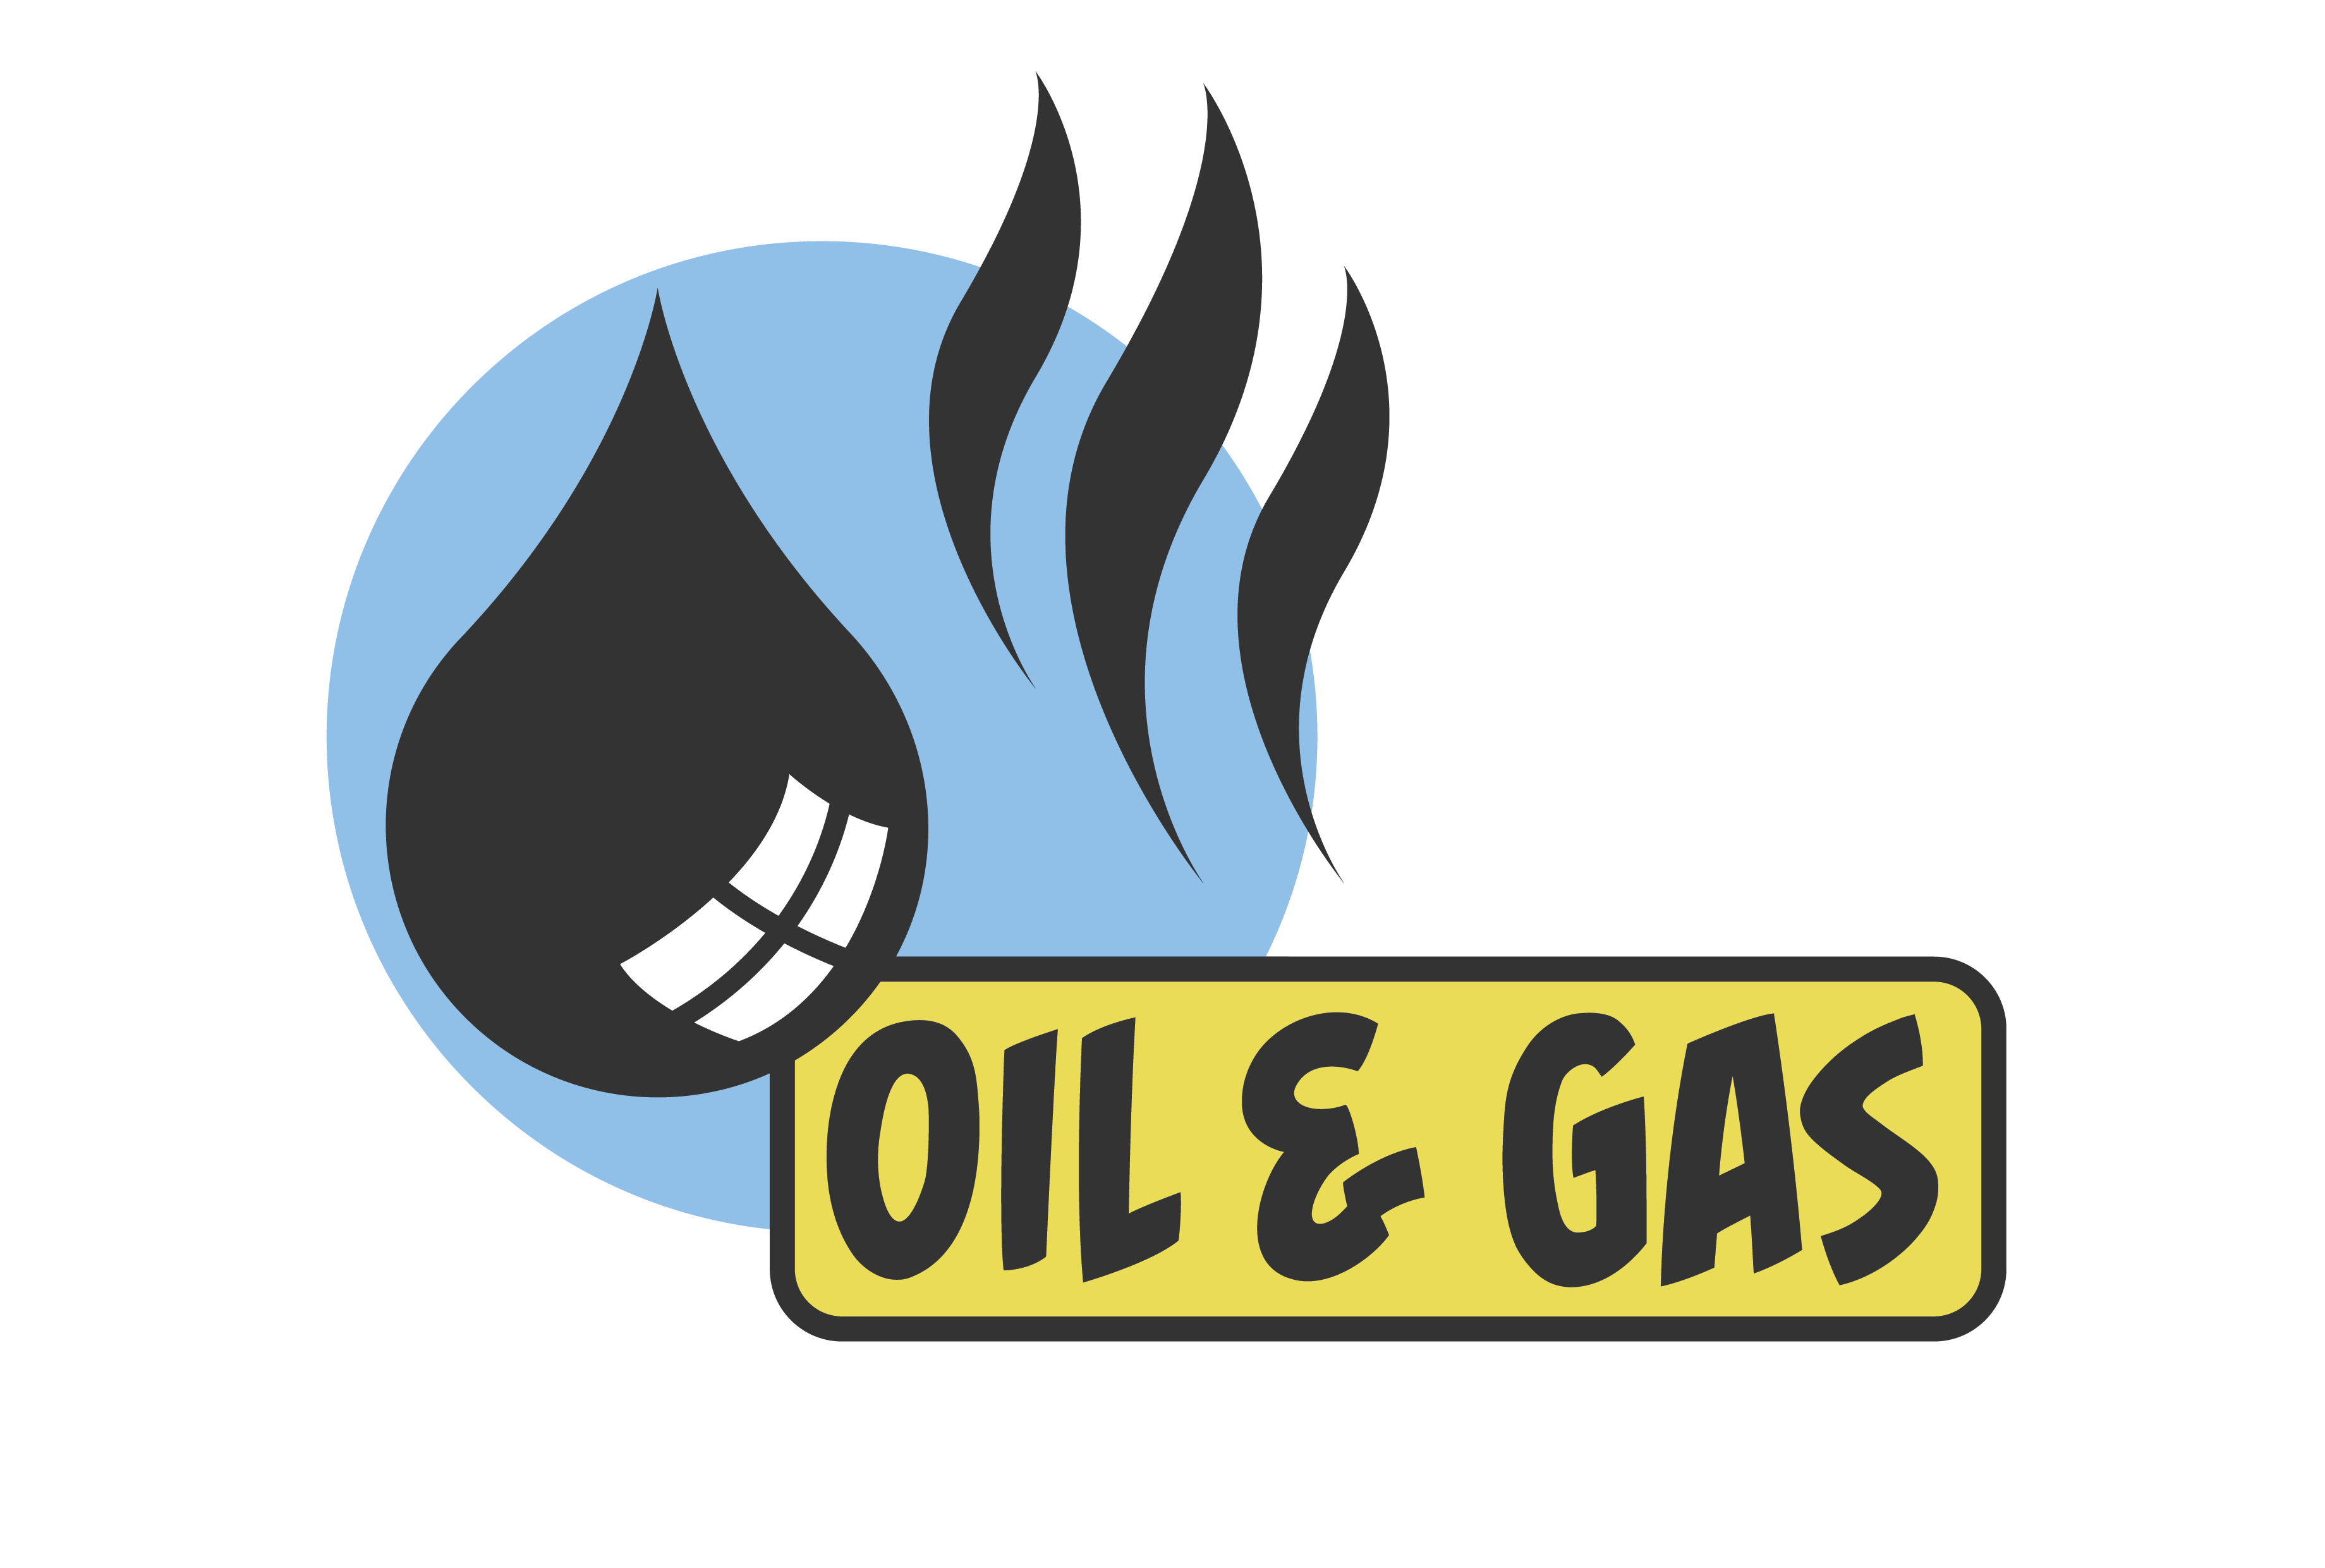 Oil and gas-01